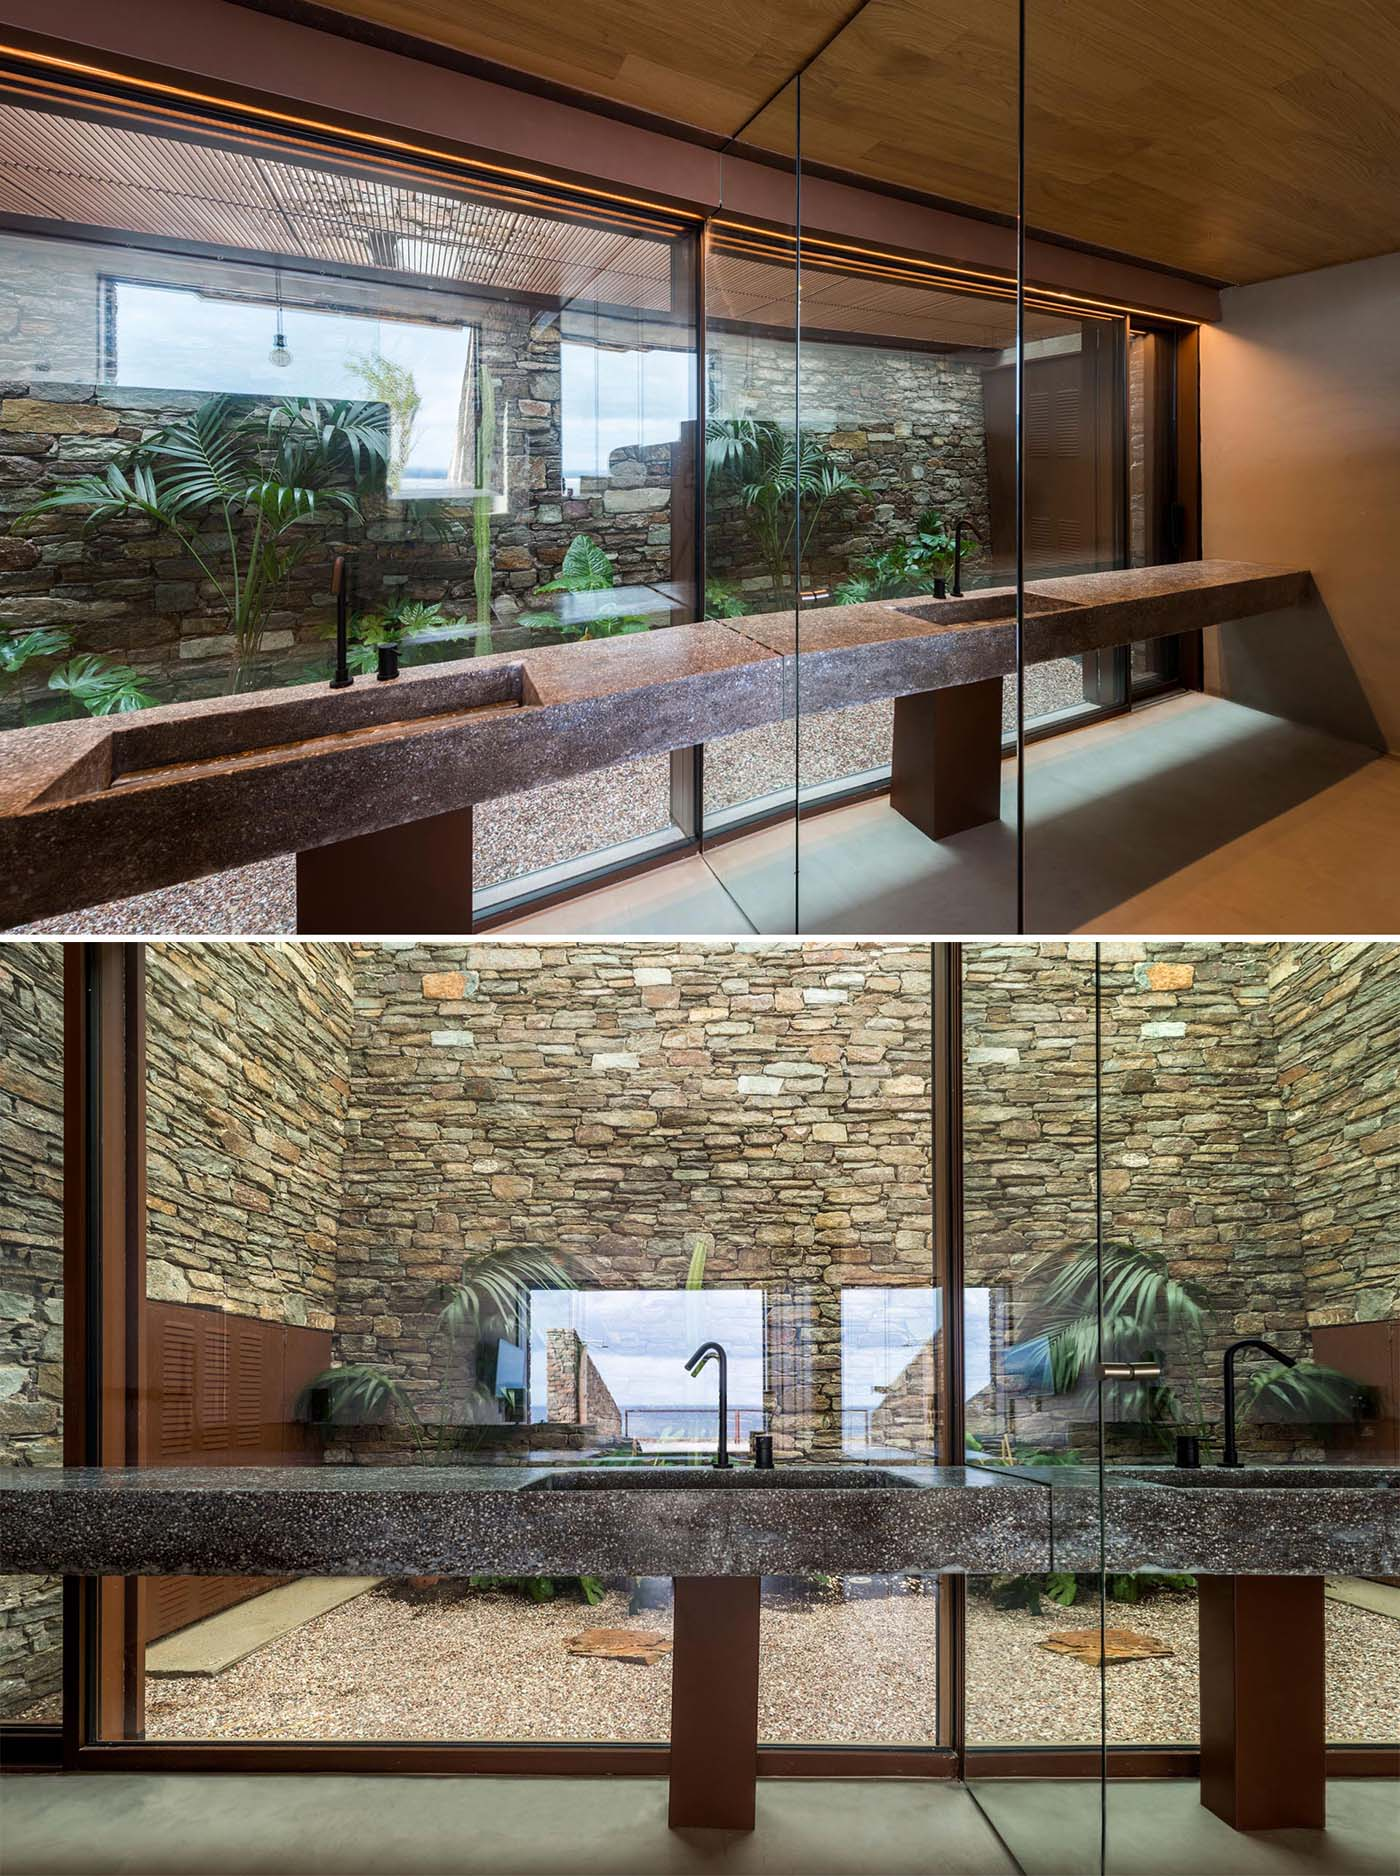 In this bathroom, a glass wall provides a view of a garden and stone wall.